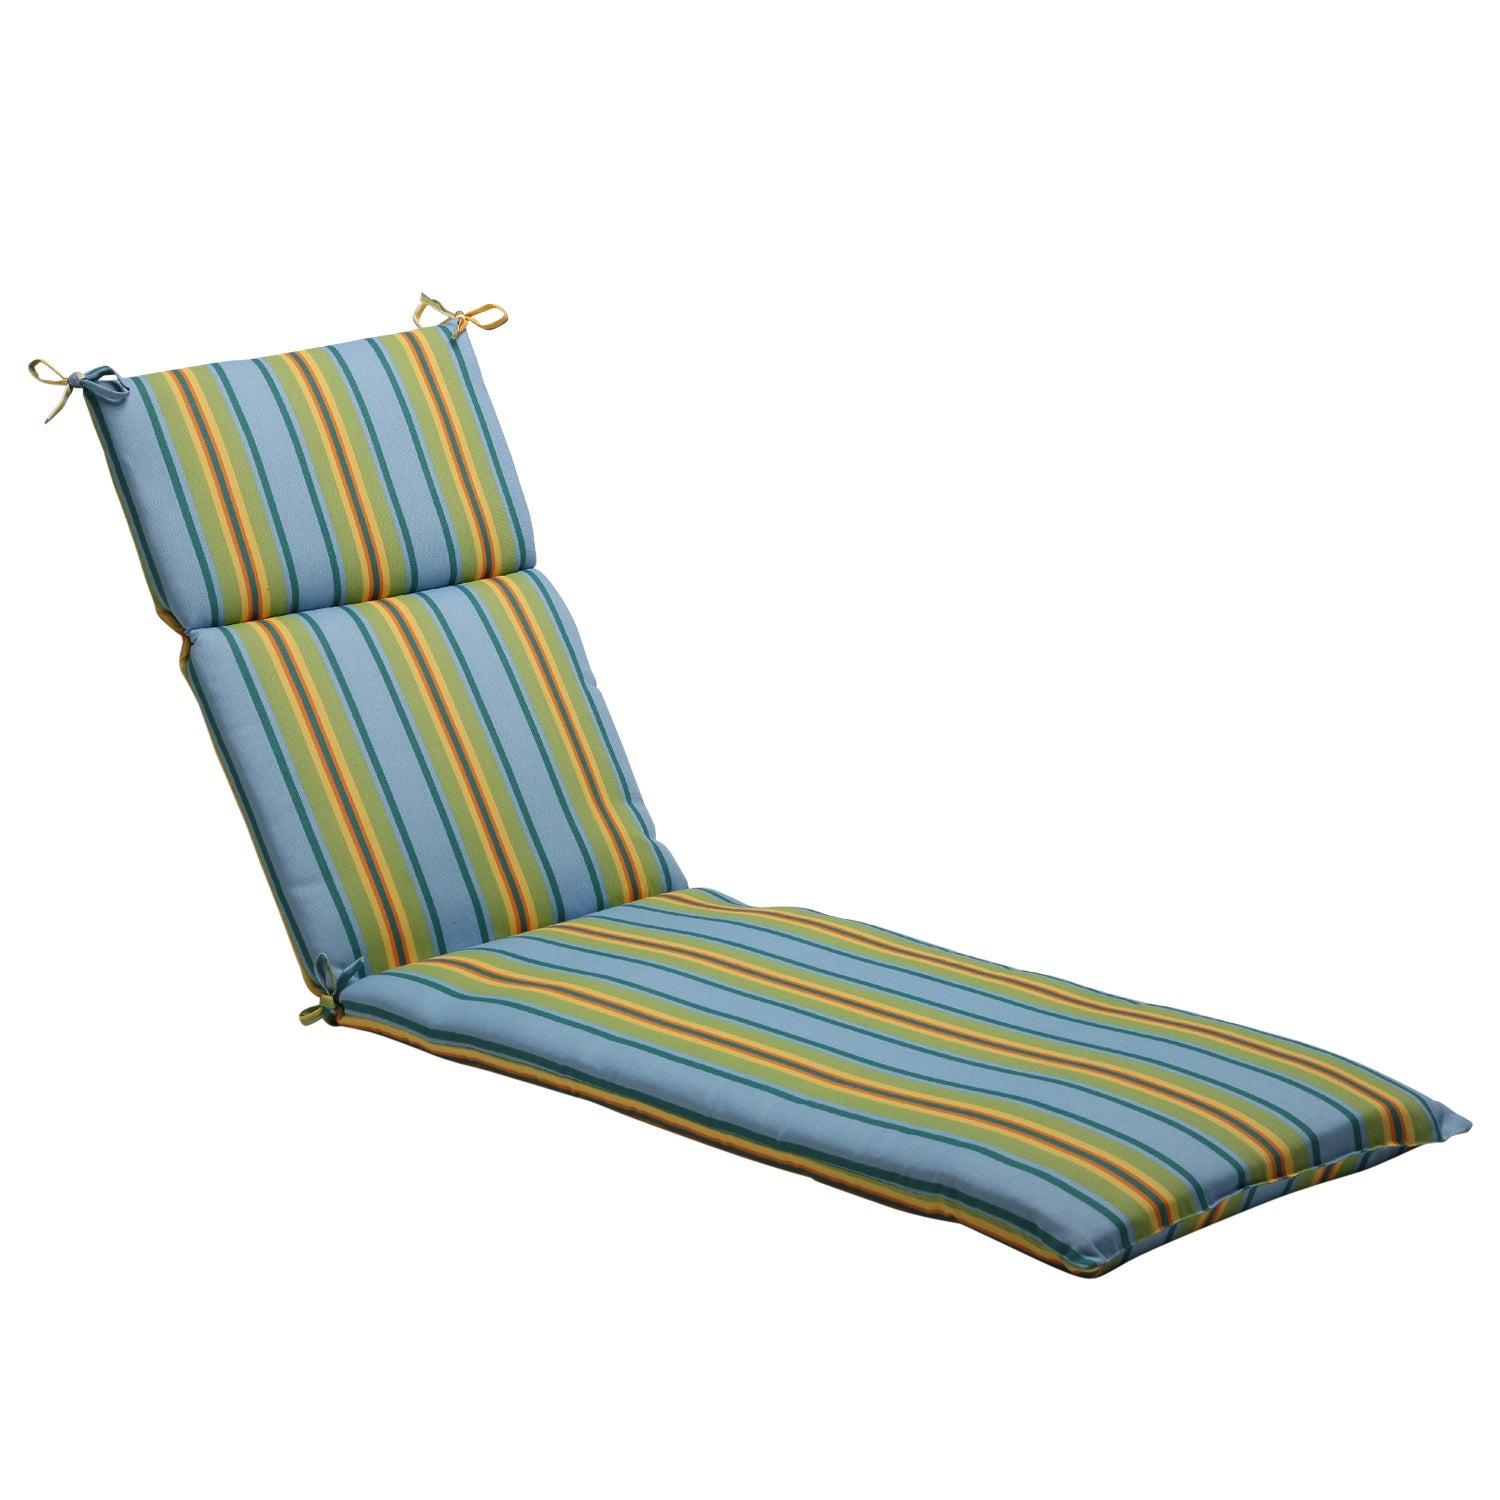 Pillow perfect blue green striped outdoor chaise lounge for Black and white striped chaise lounge cushions